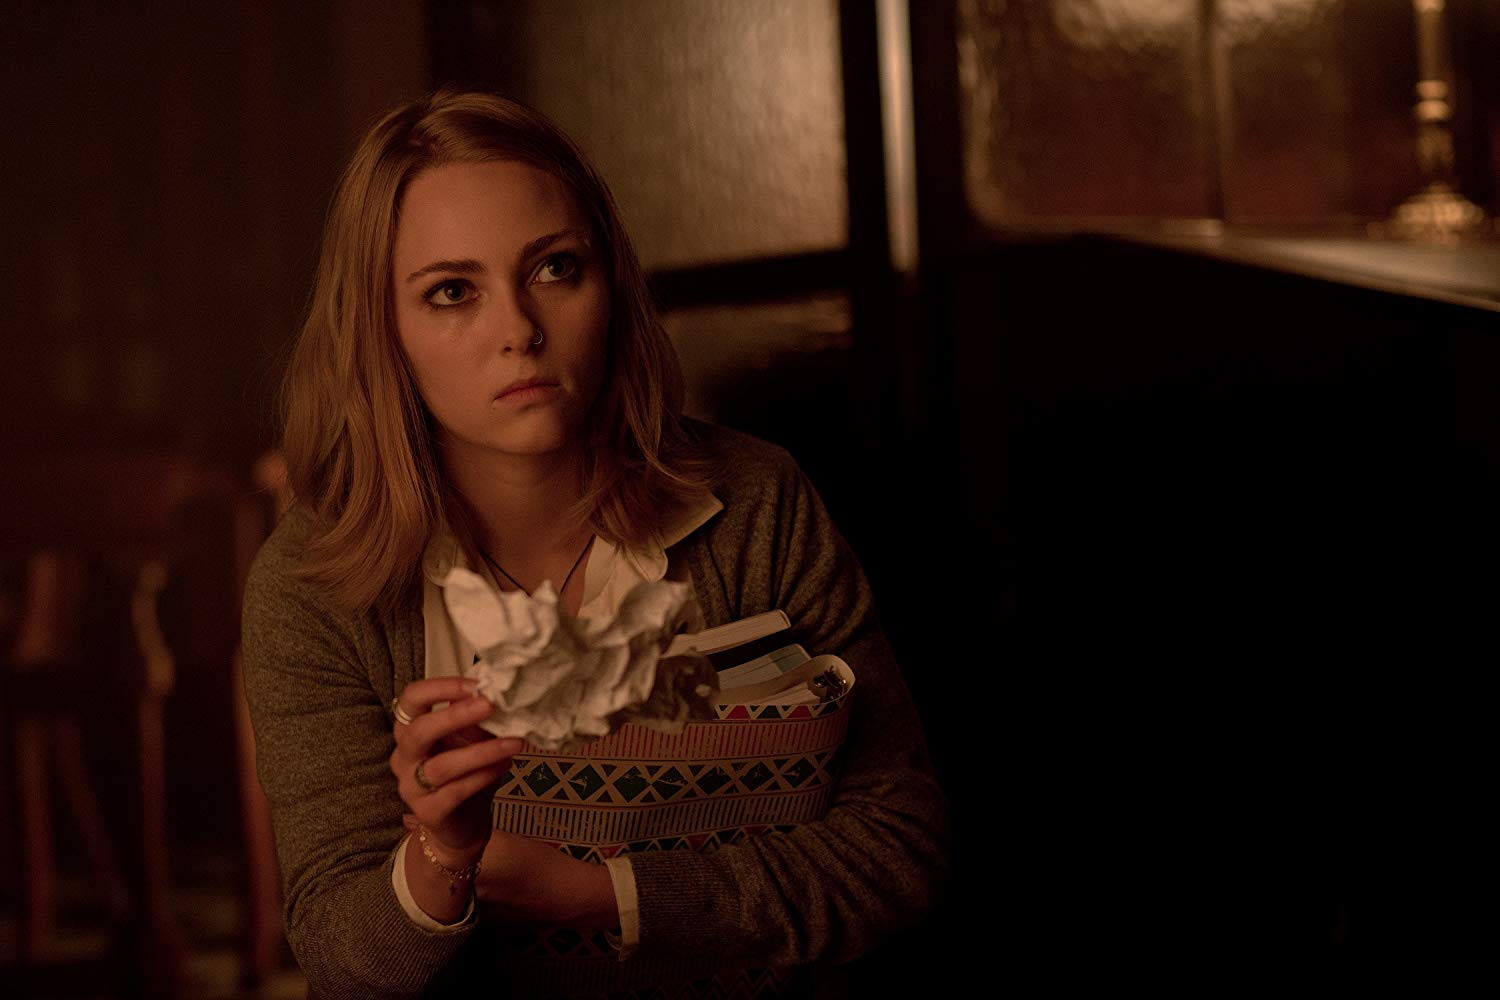 AnnaSophia Robb investigates mysterious happenings at the Blackwood School in Down a Dark Hall (2018)